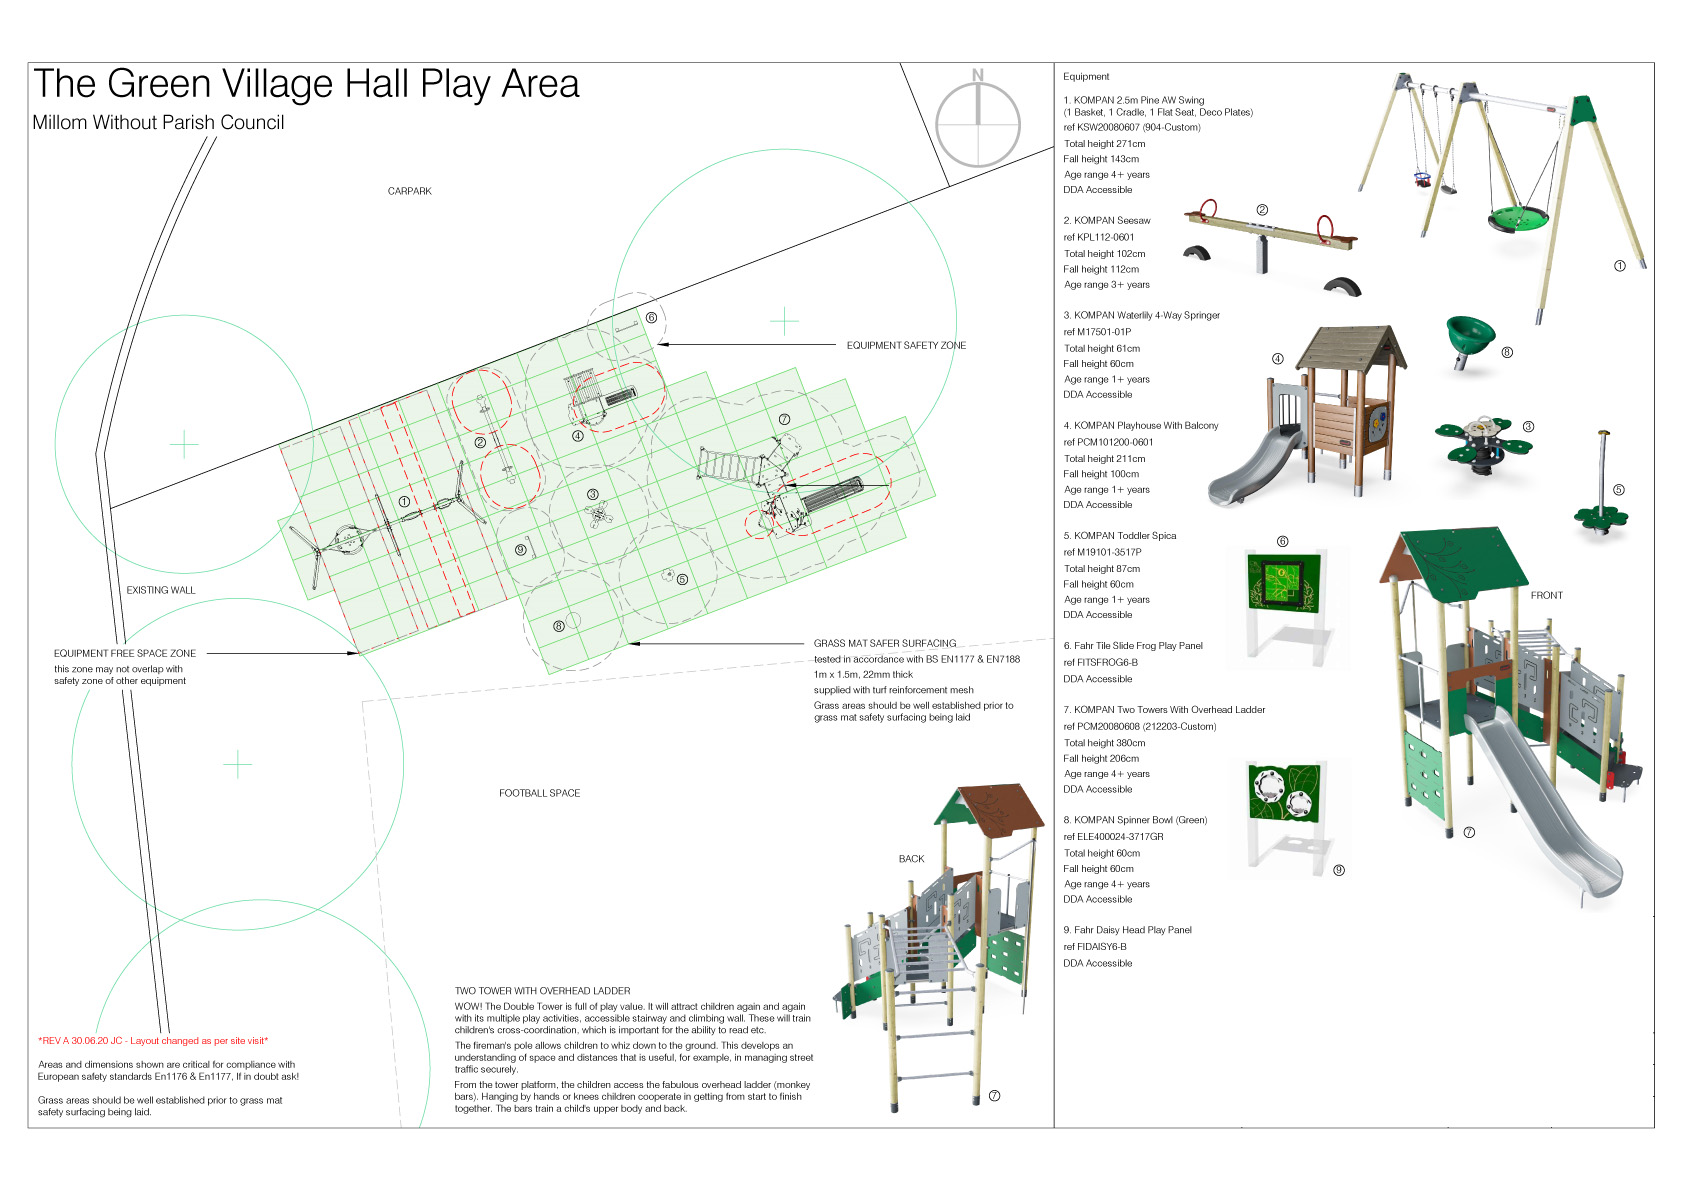 Plan of Play Area